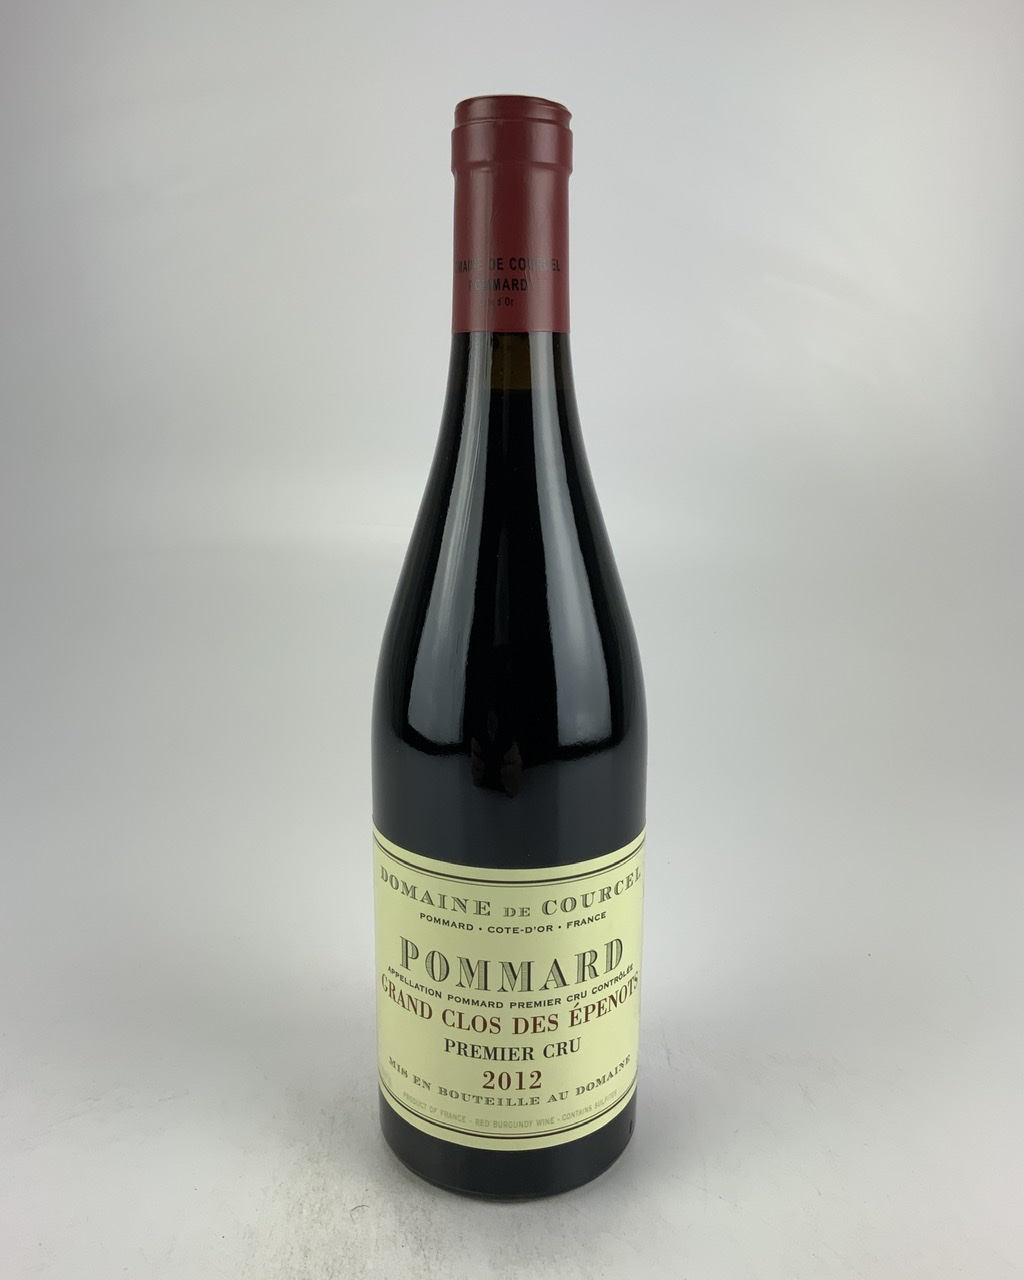 2012 Courcel Grand Clos des Epenots, Pommard AG--93